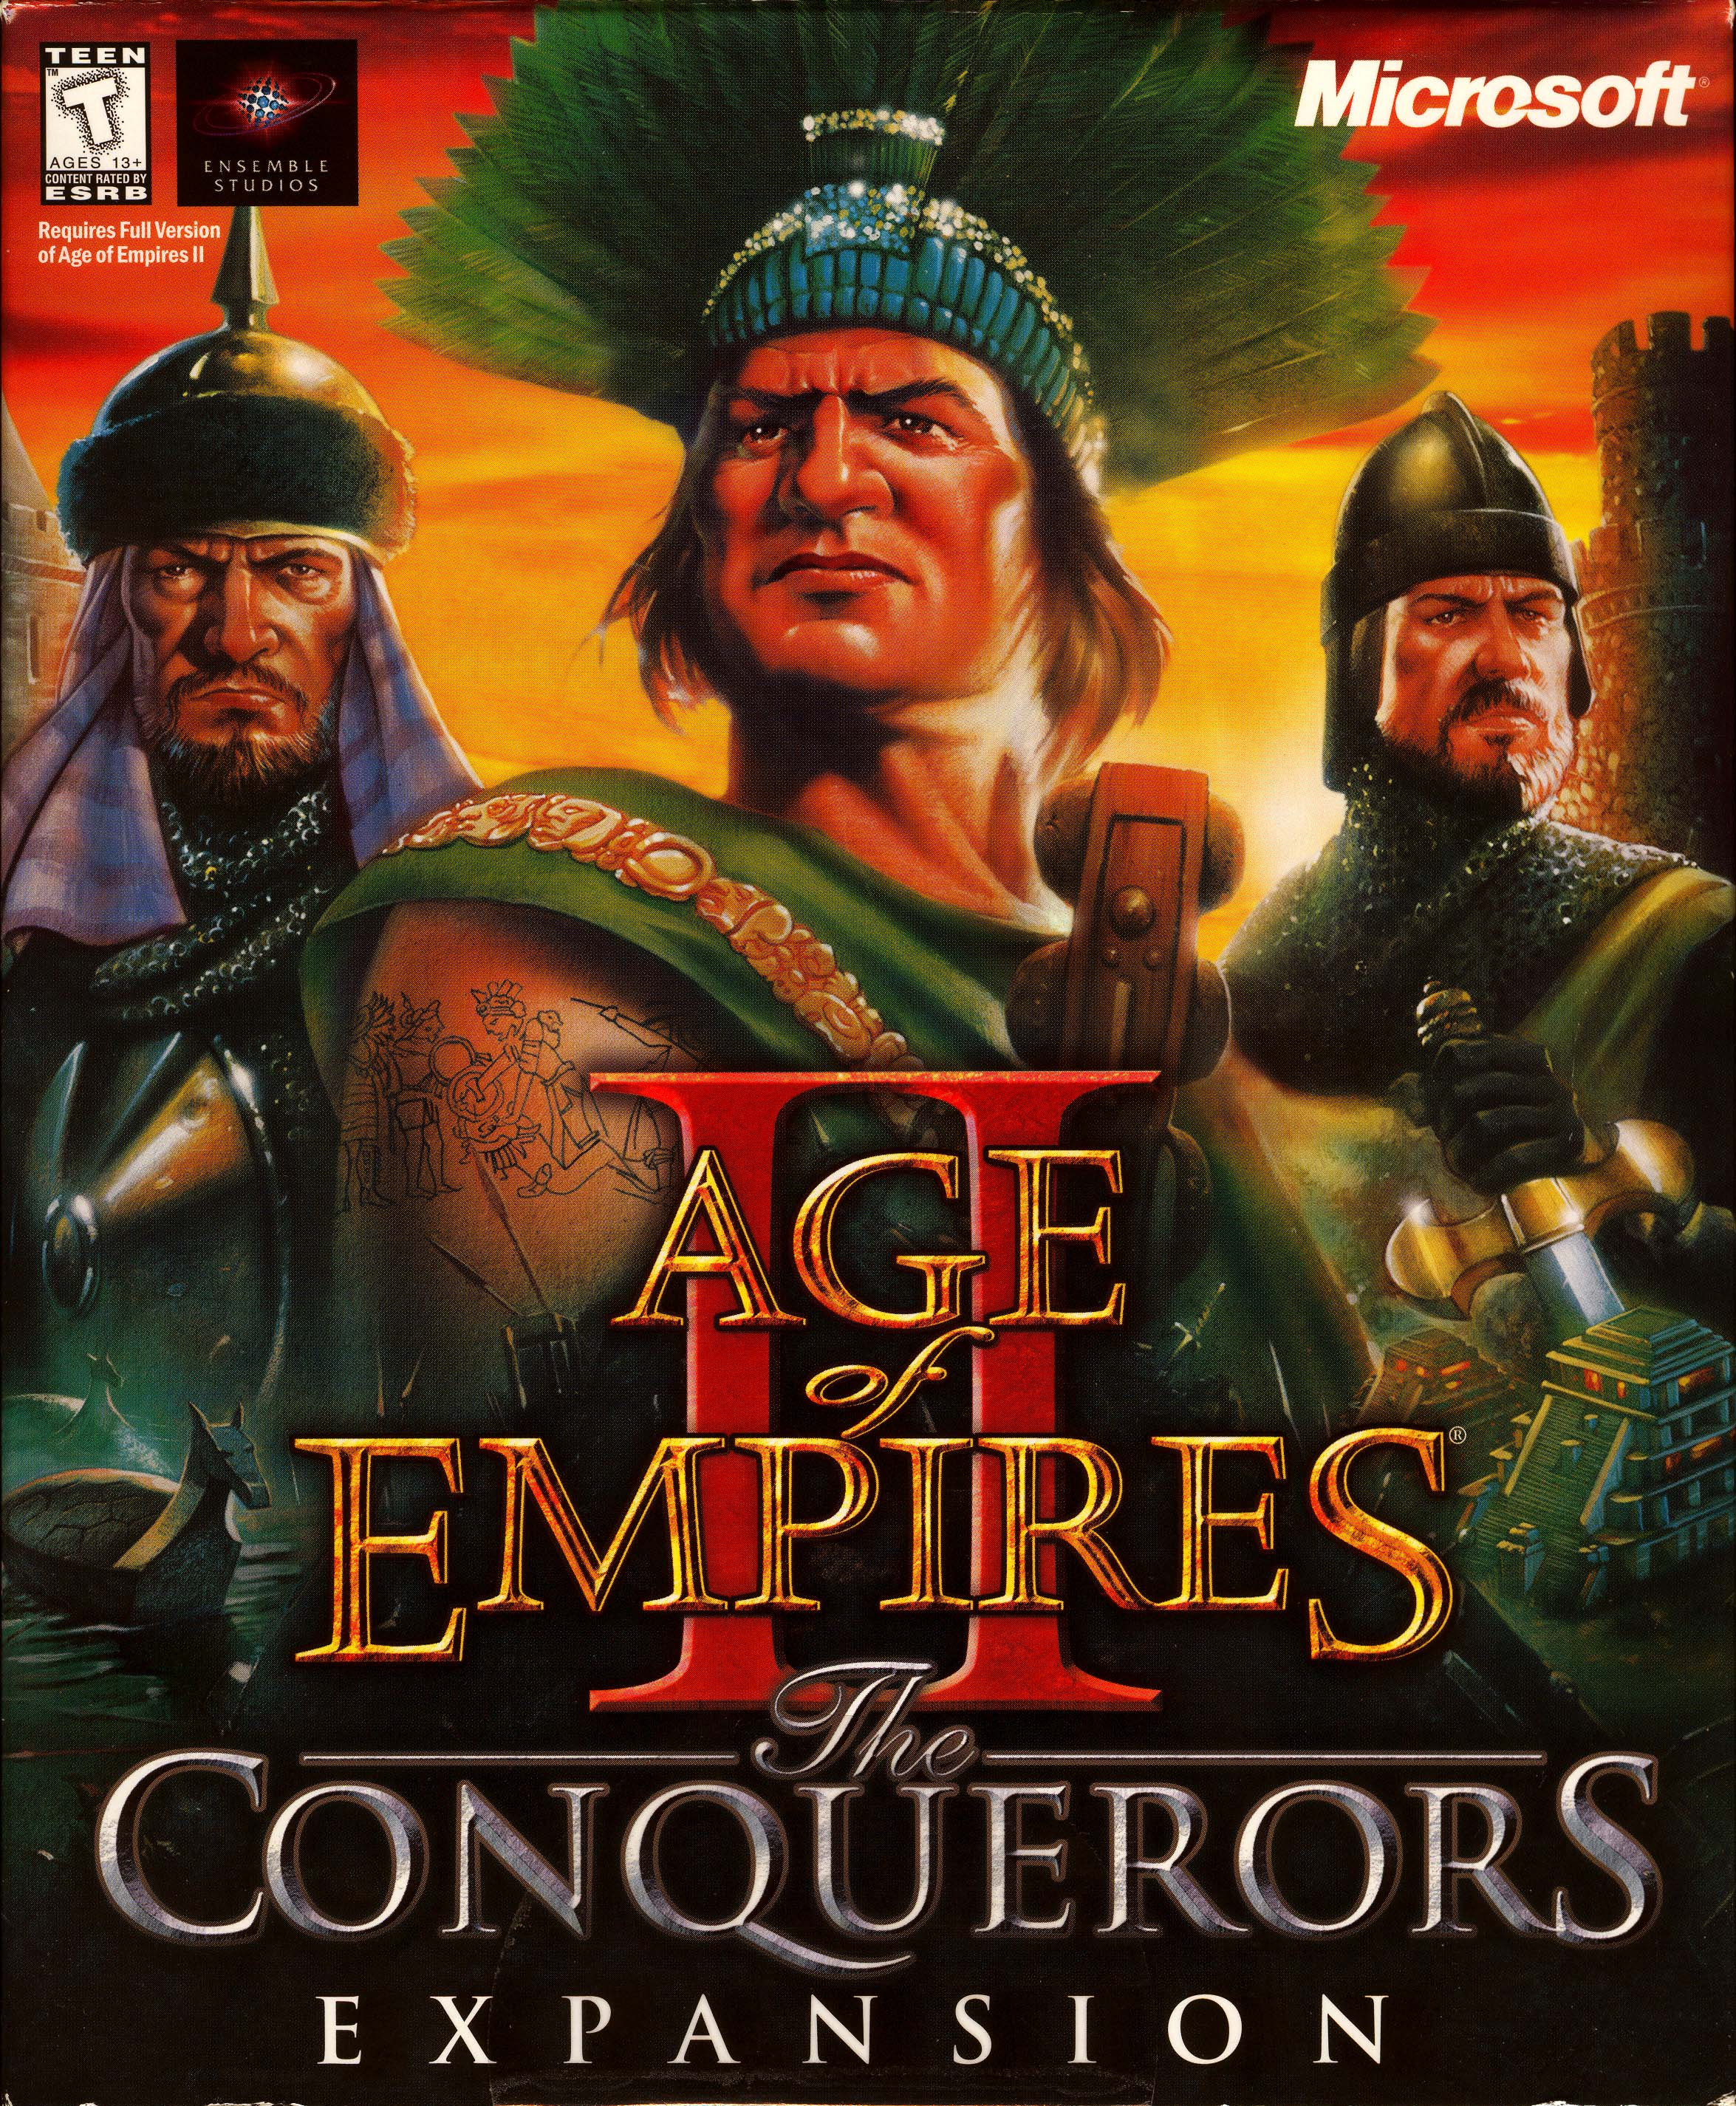 Age of Empires II: The Conquerors (W32) - Video Game Music